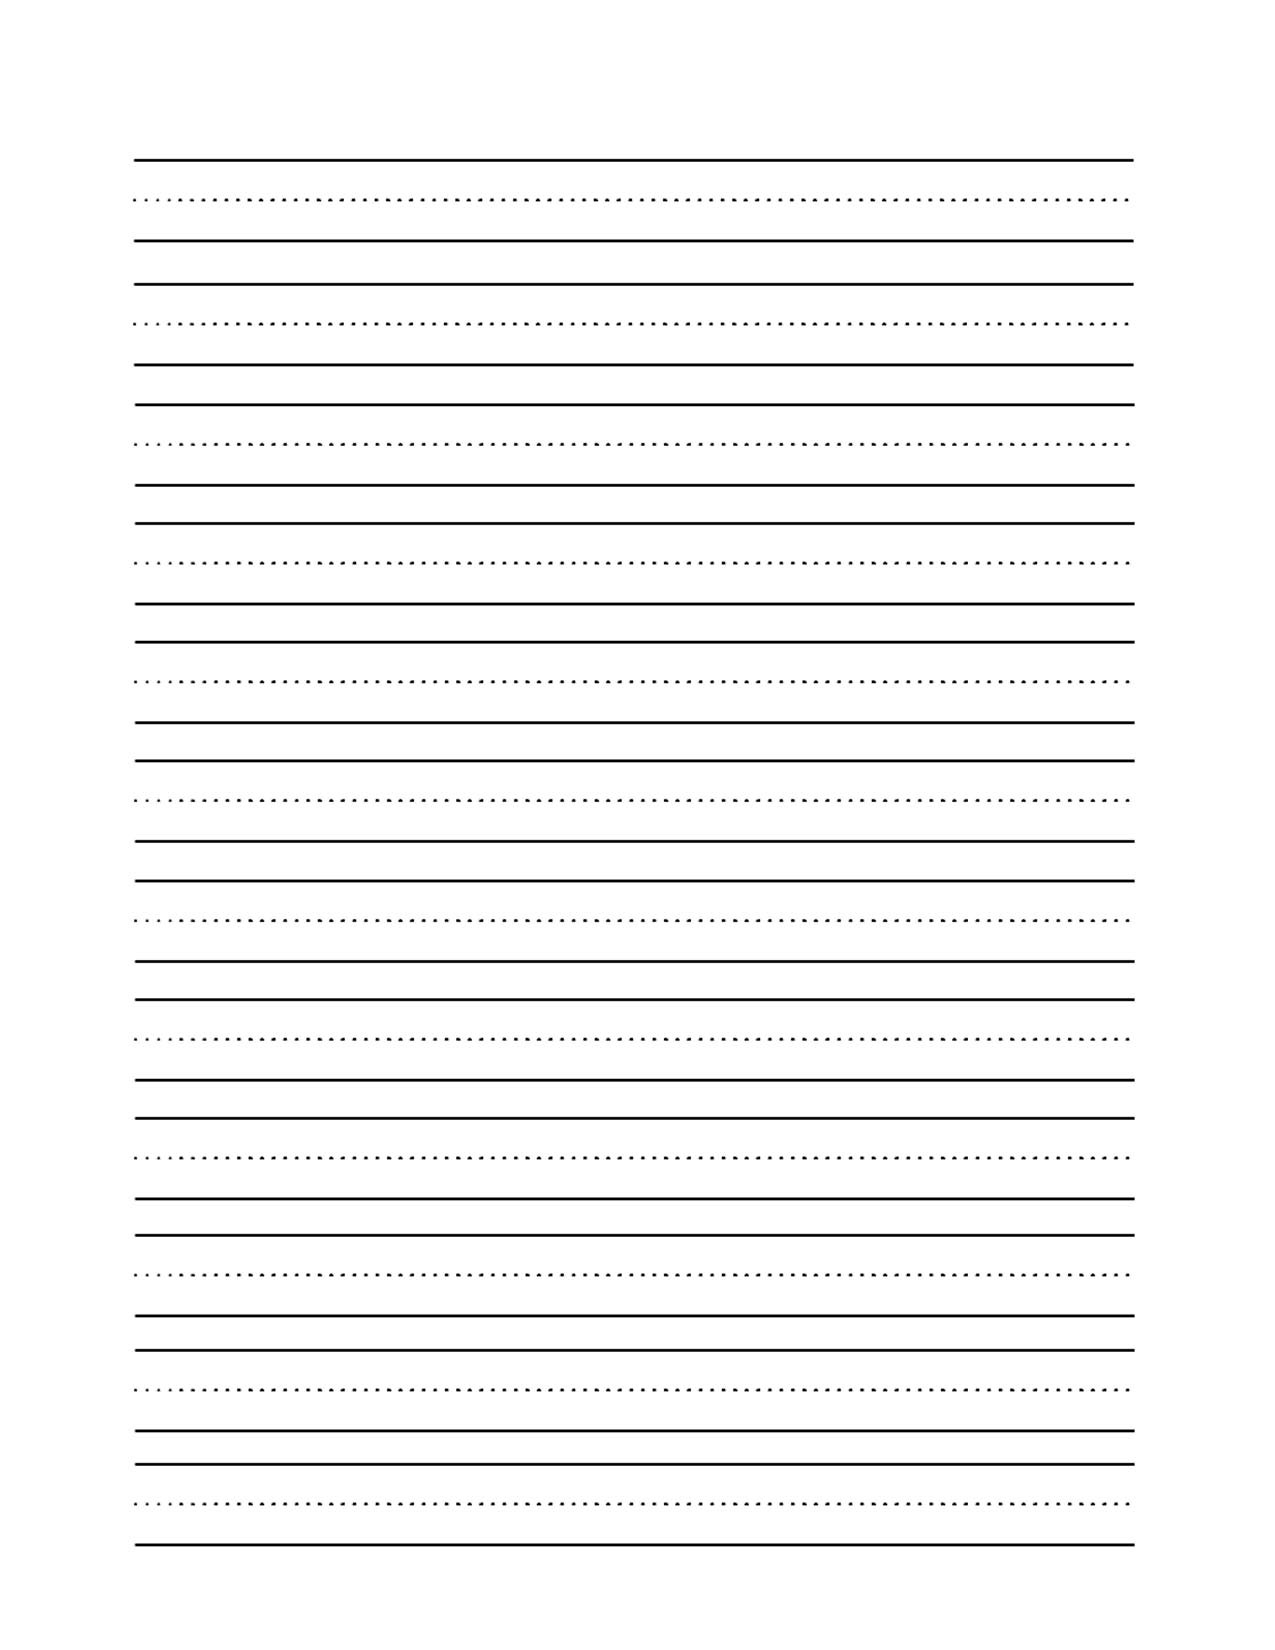 Blank Handwriting Paper